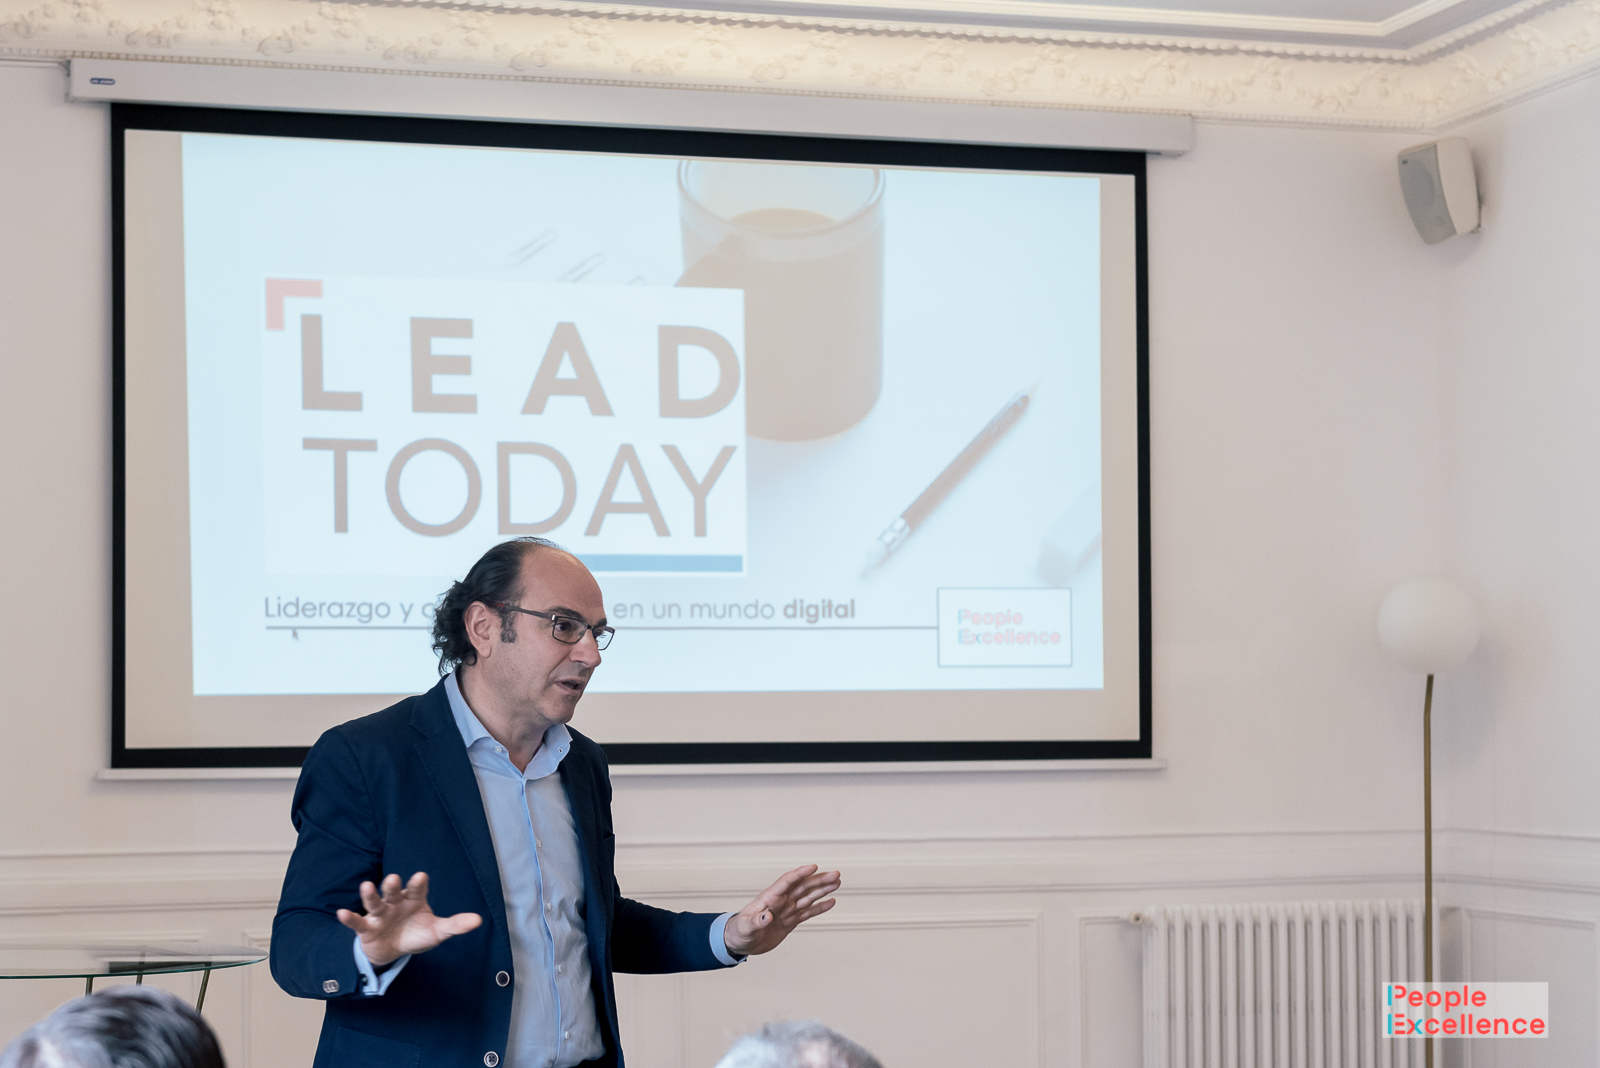 LEAD TODAY: LIDERAZGO Y COMUNICACIÓN EN UN MUNDO DIGITAL